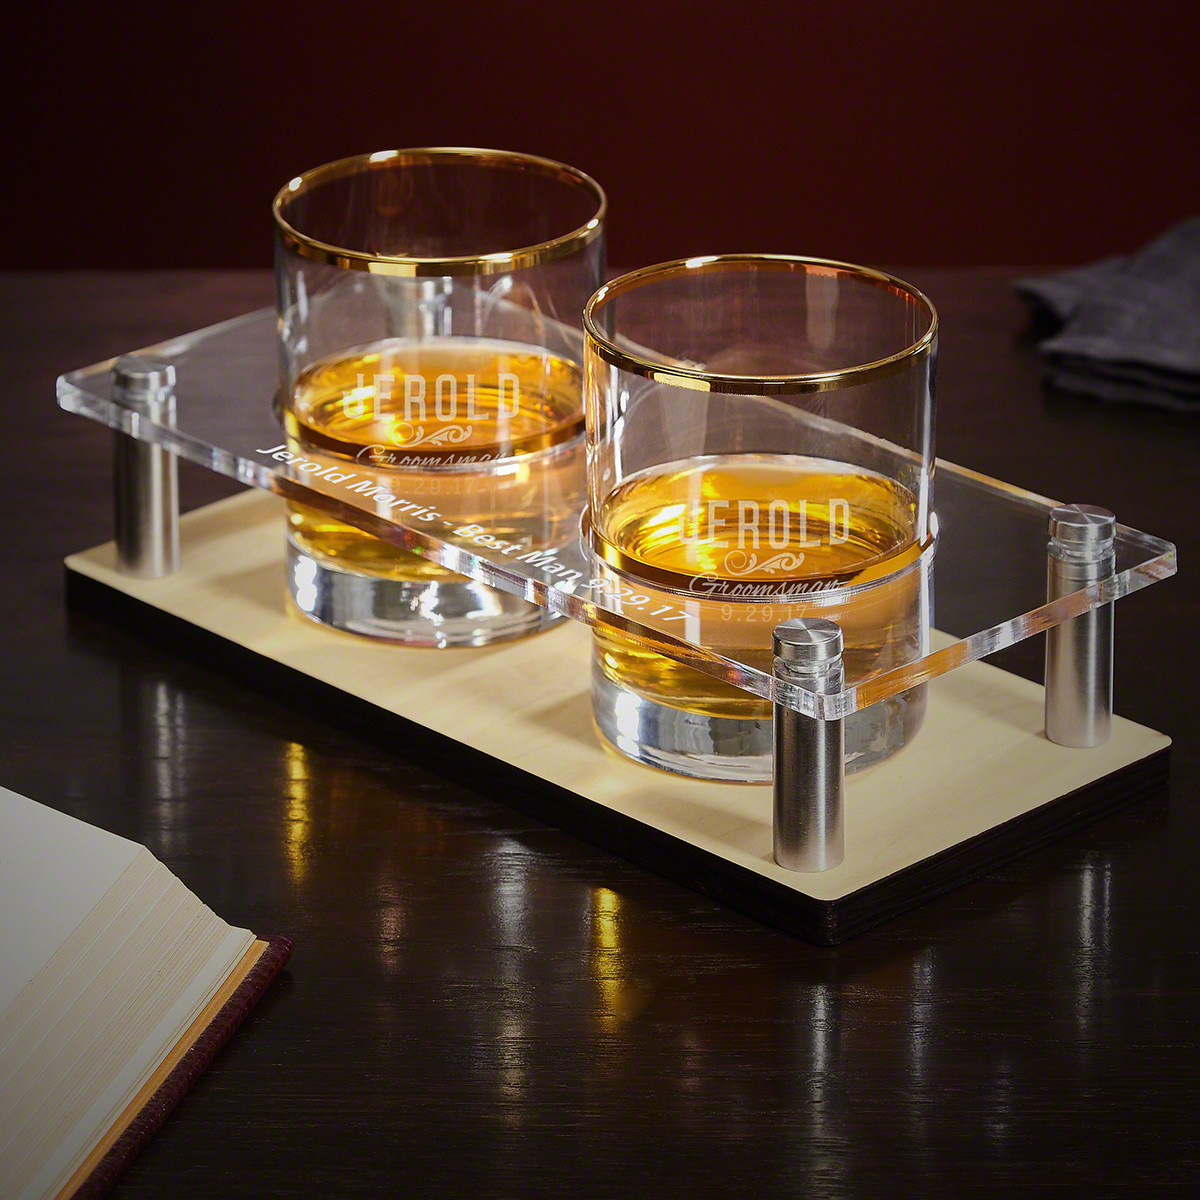 Classic Groomsman Gift Whiskey Tray with Custom Gold Rim Glasses 3 pc Set